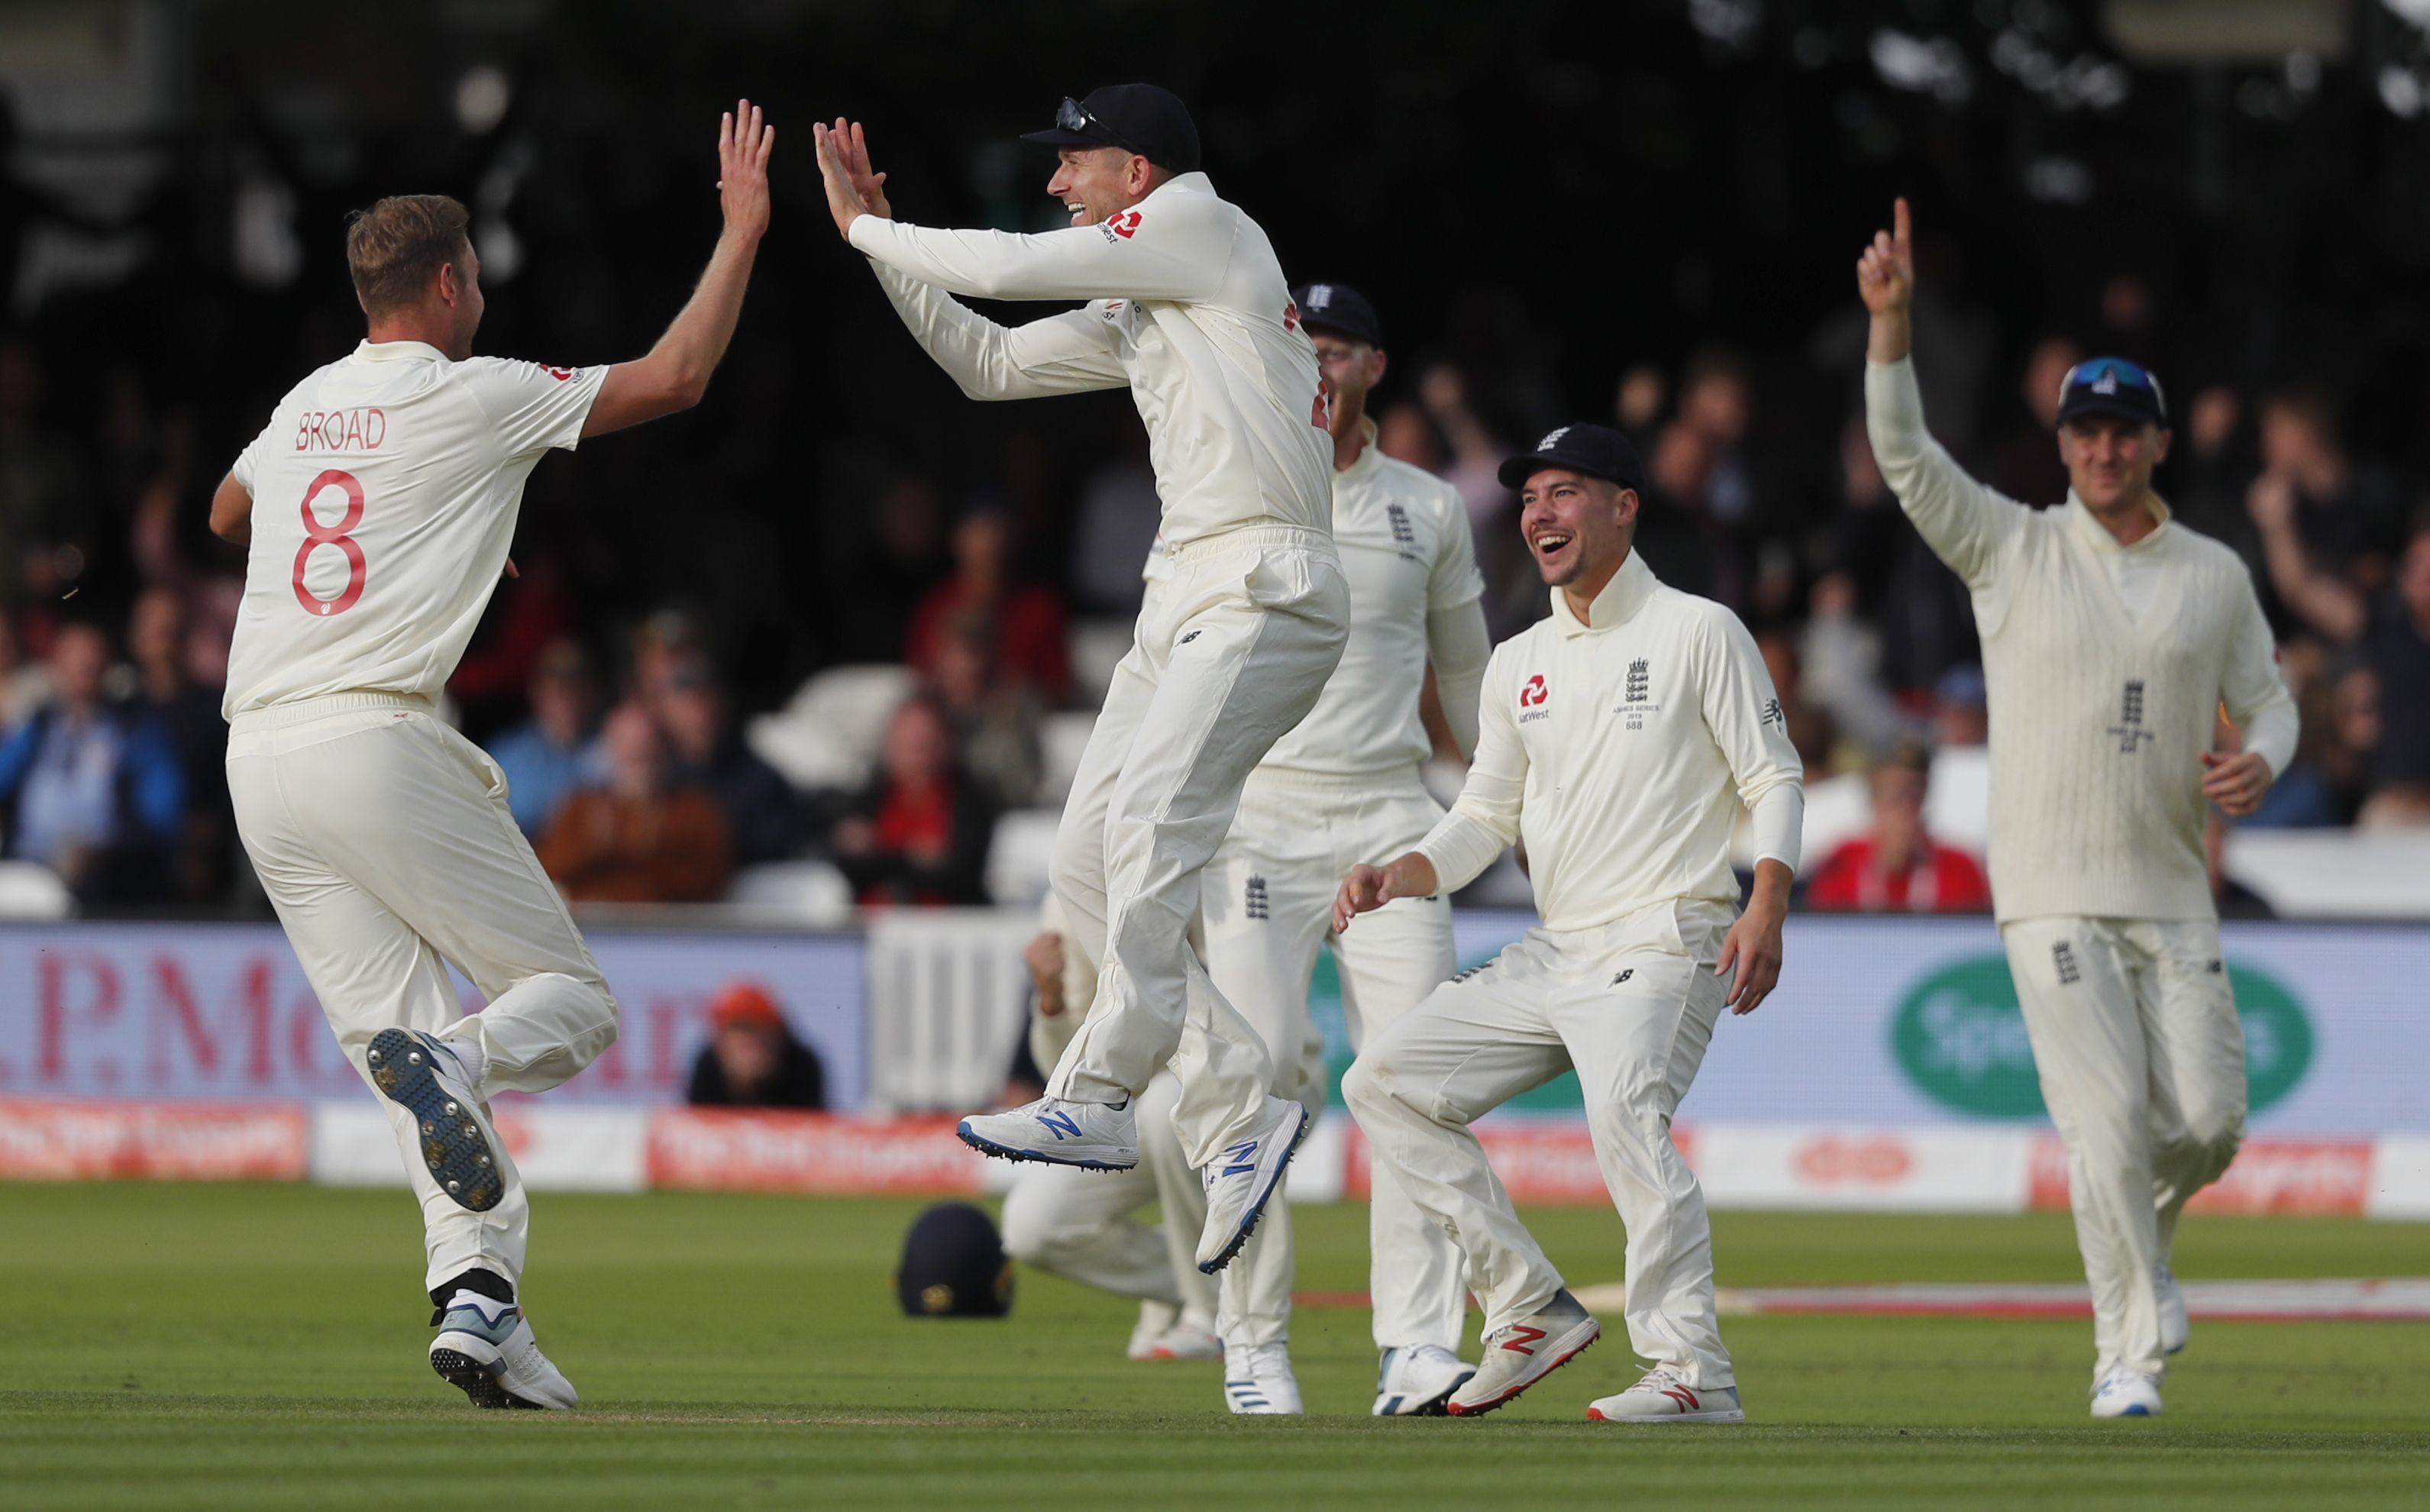 Ashes: Australia's fast start slowed by Bairstow, Broad